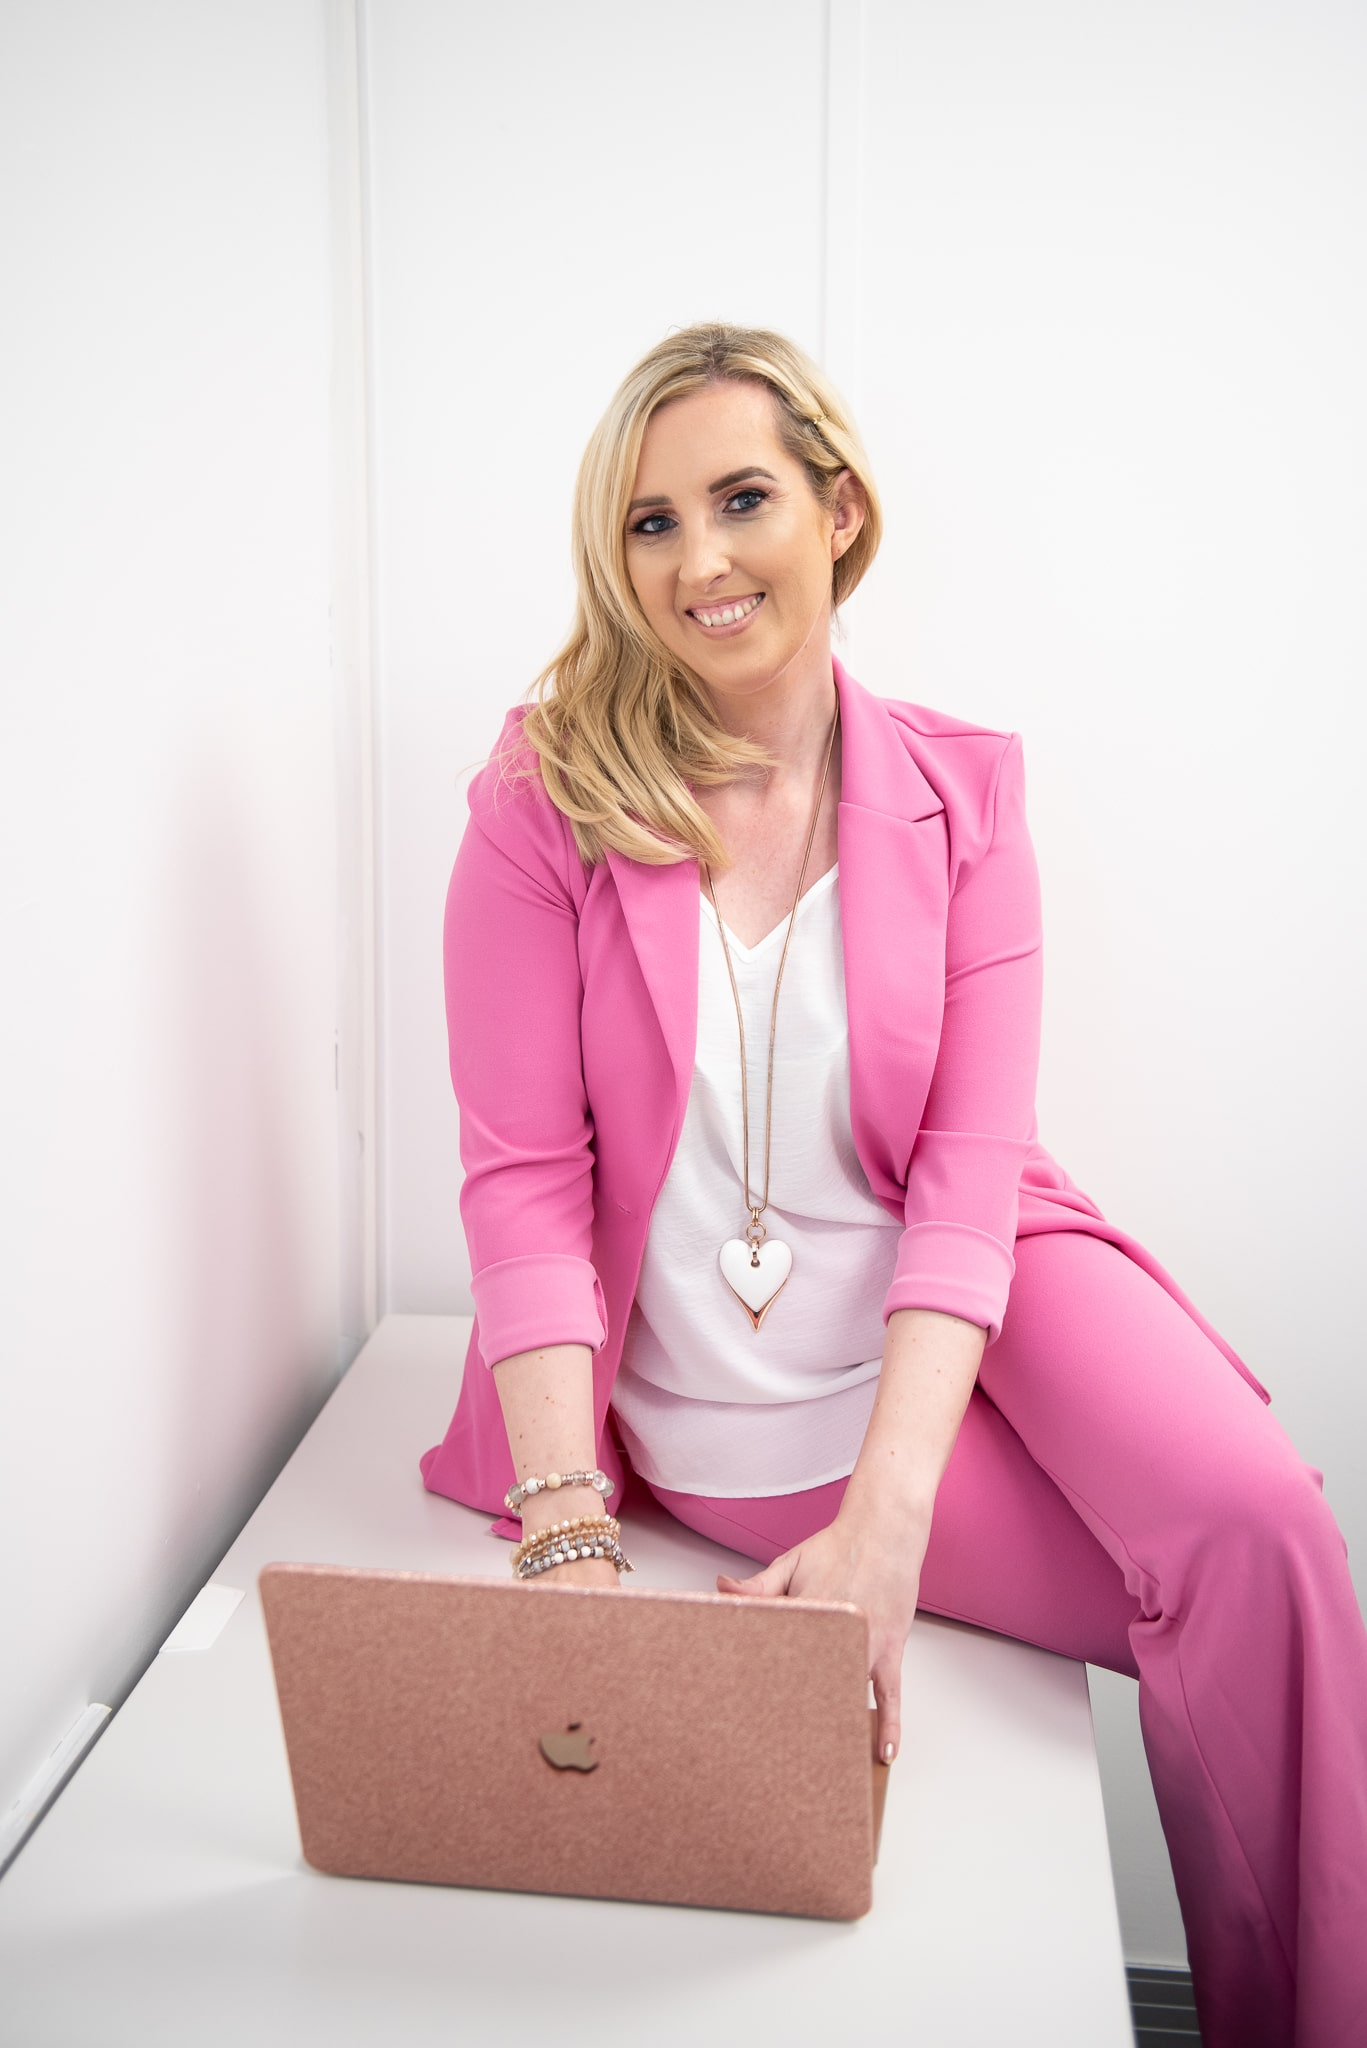 Carly Keighley - personal brand content strategy